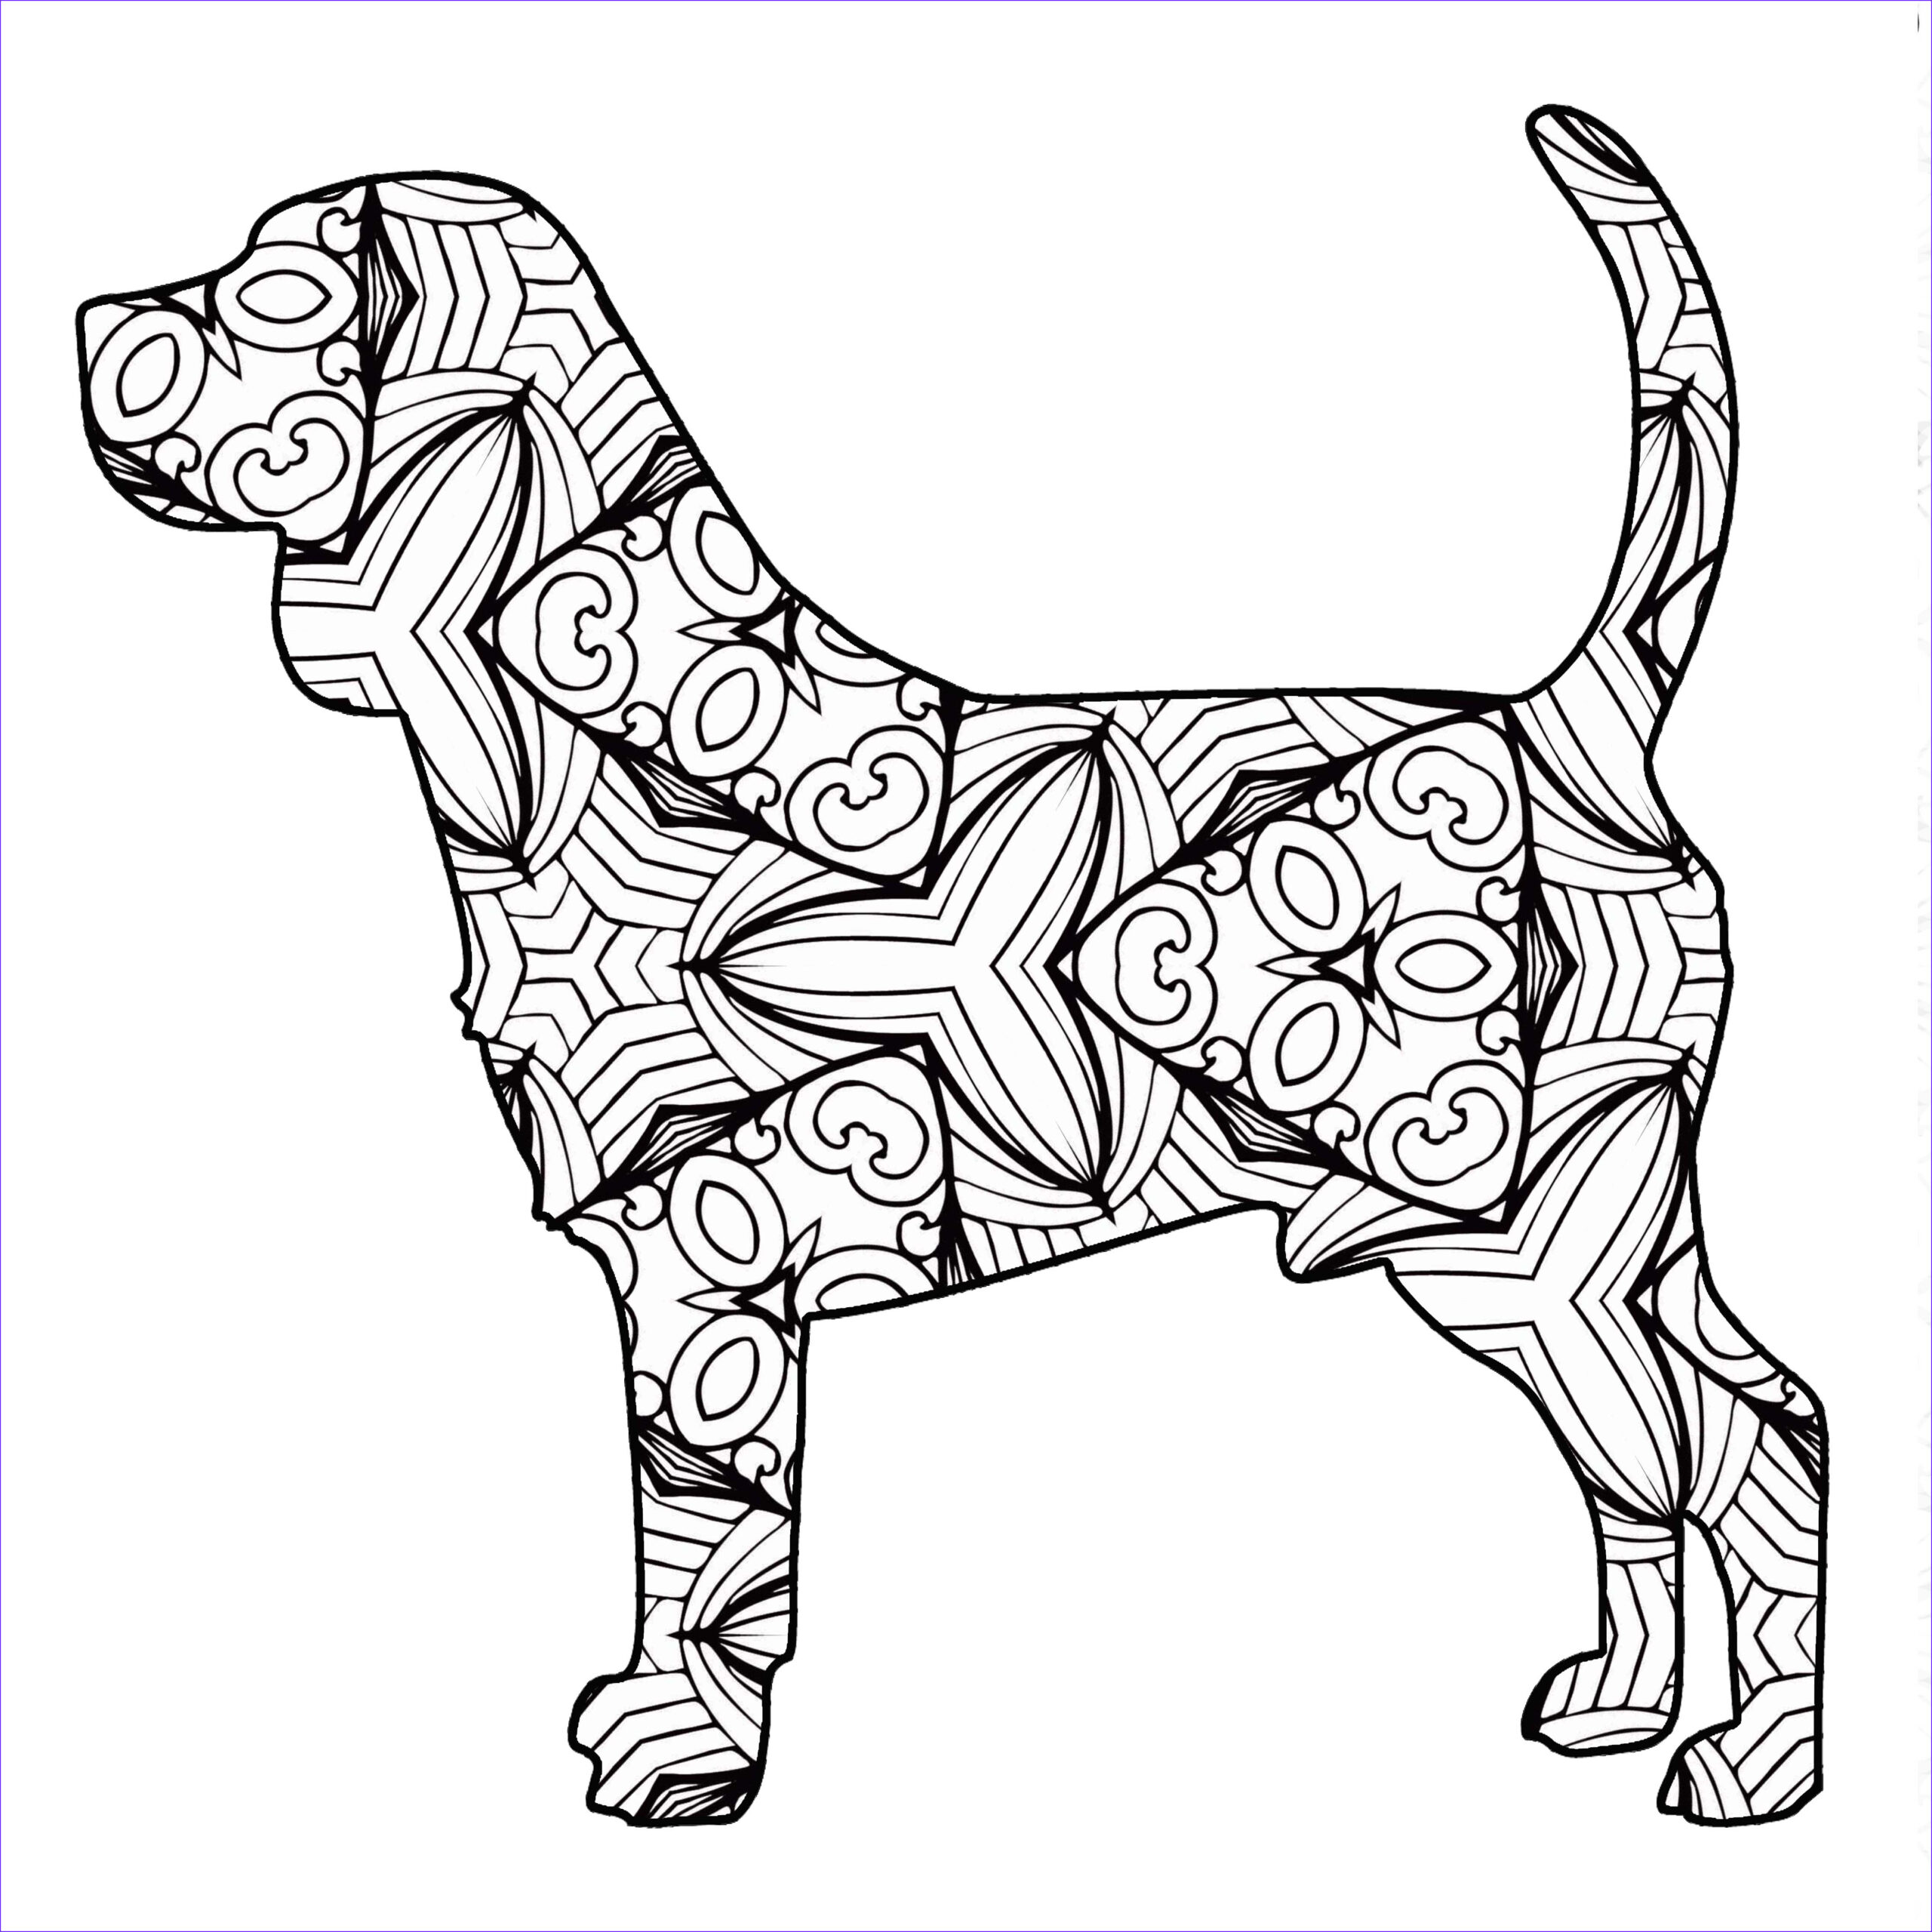 Free Printable Animal Coloring Pages Inspirational Photography 30 Free Coloring Pages A Geometric Animal Coloring